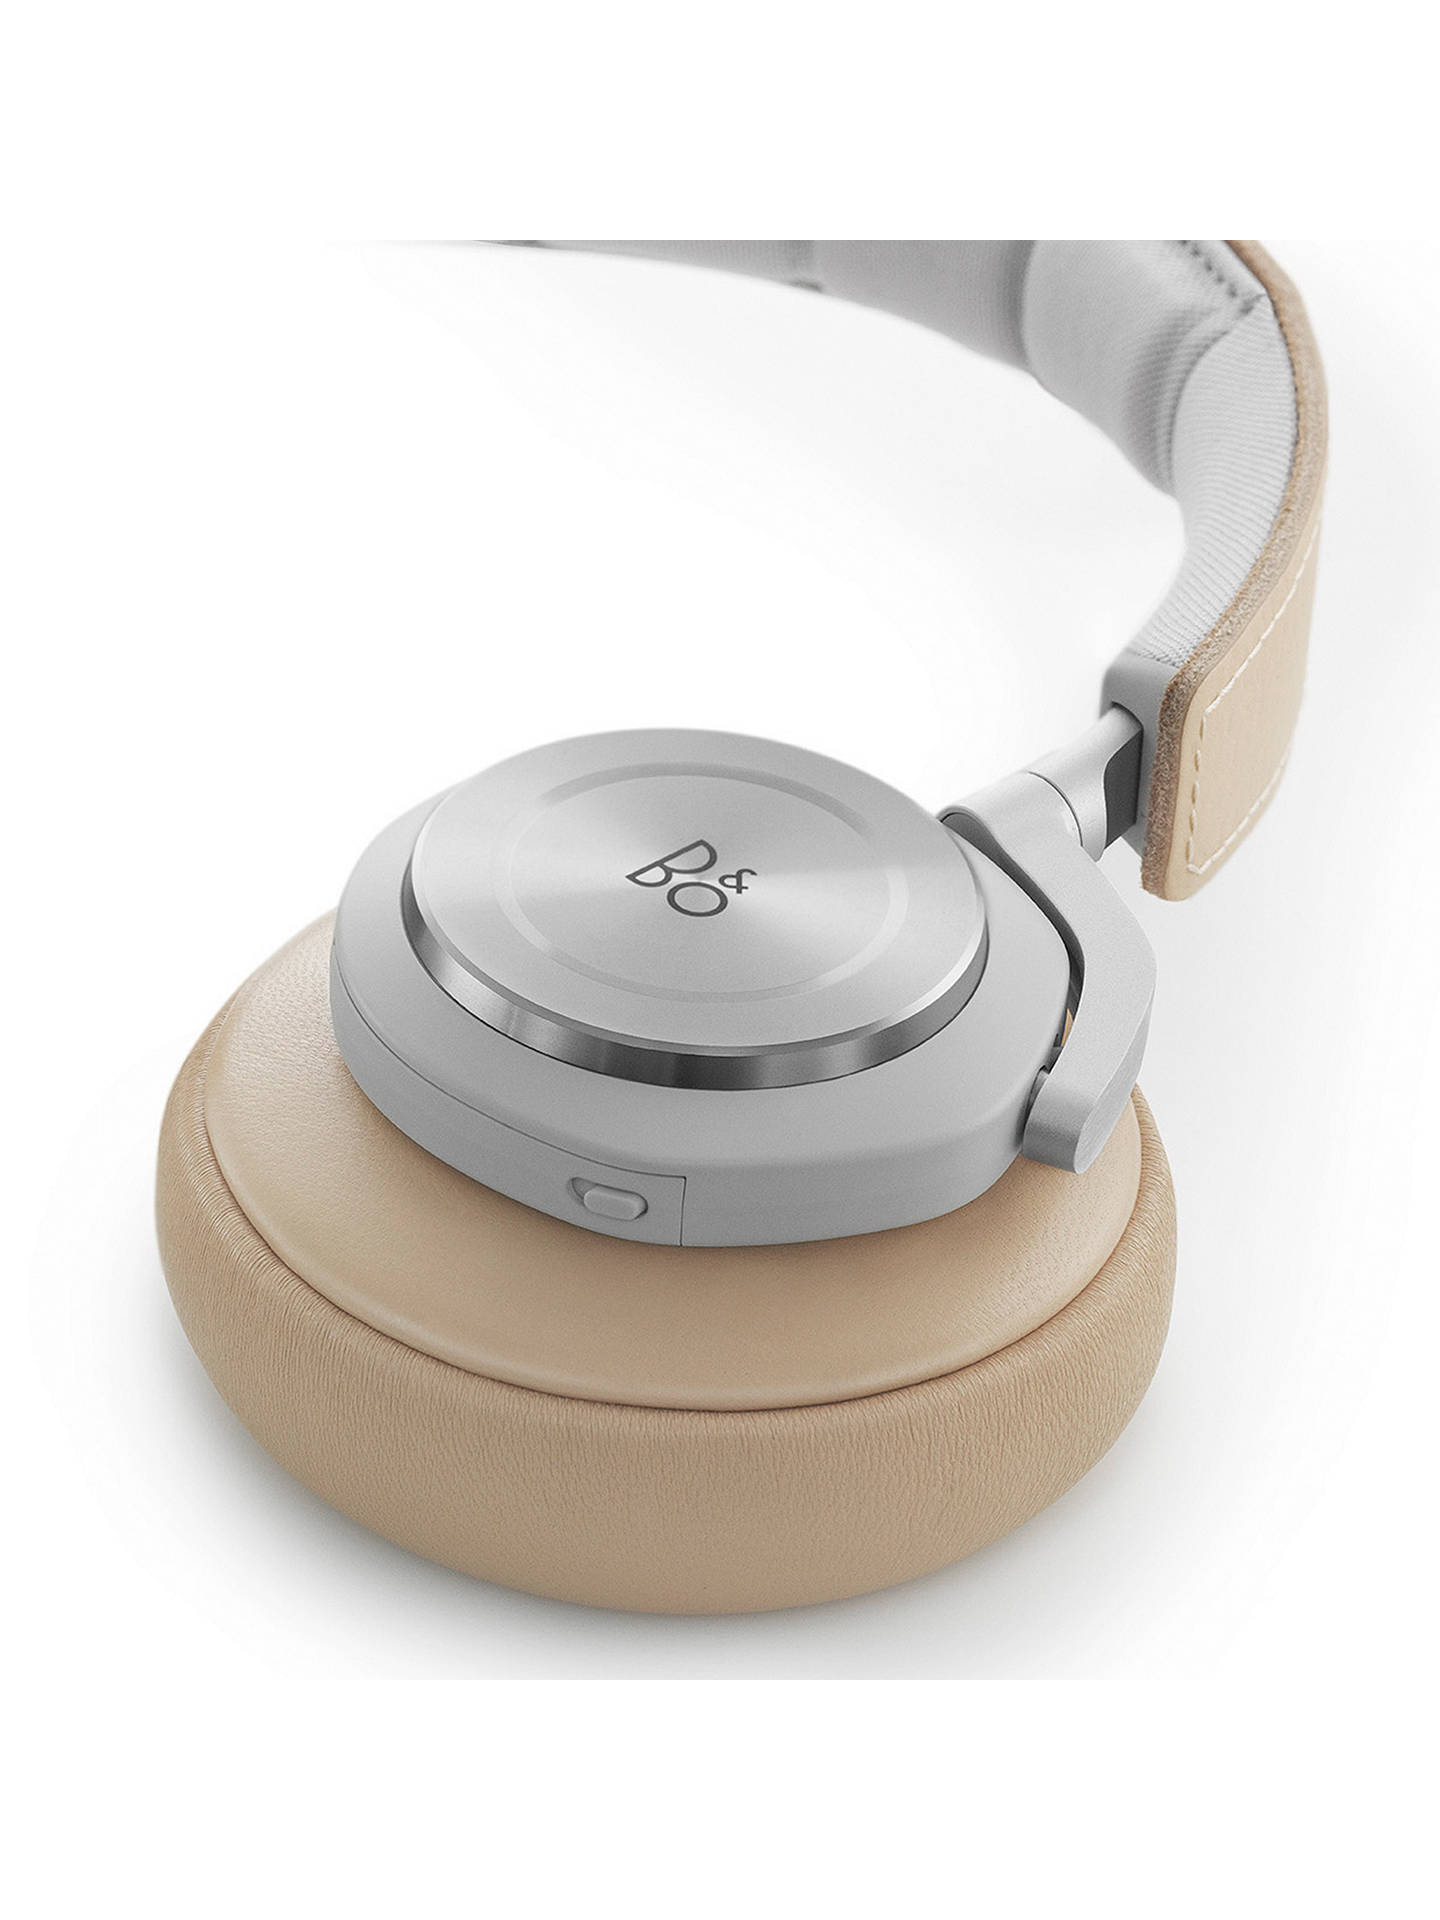 ... BuyB&O PLAY by Bang & Olufsen Beoplay H7 Wireless Bluetooth Over-Ear Headphones with Intuitive ...